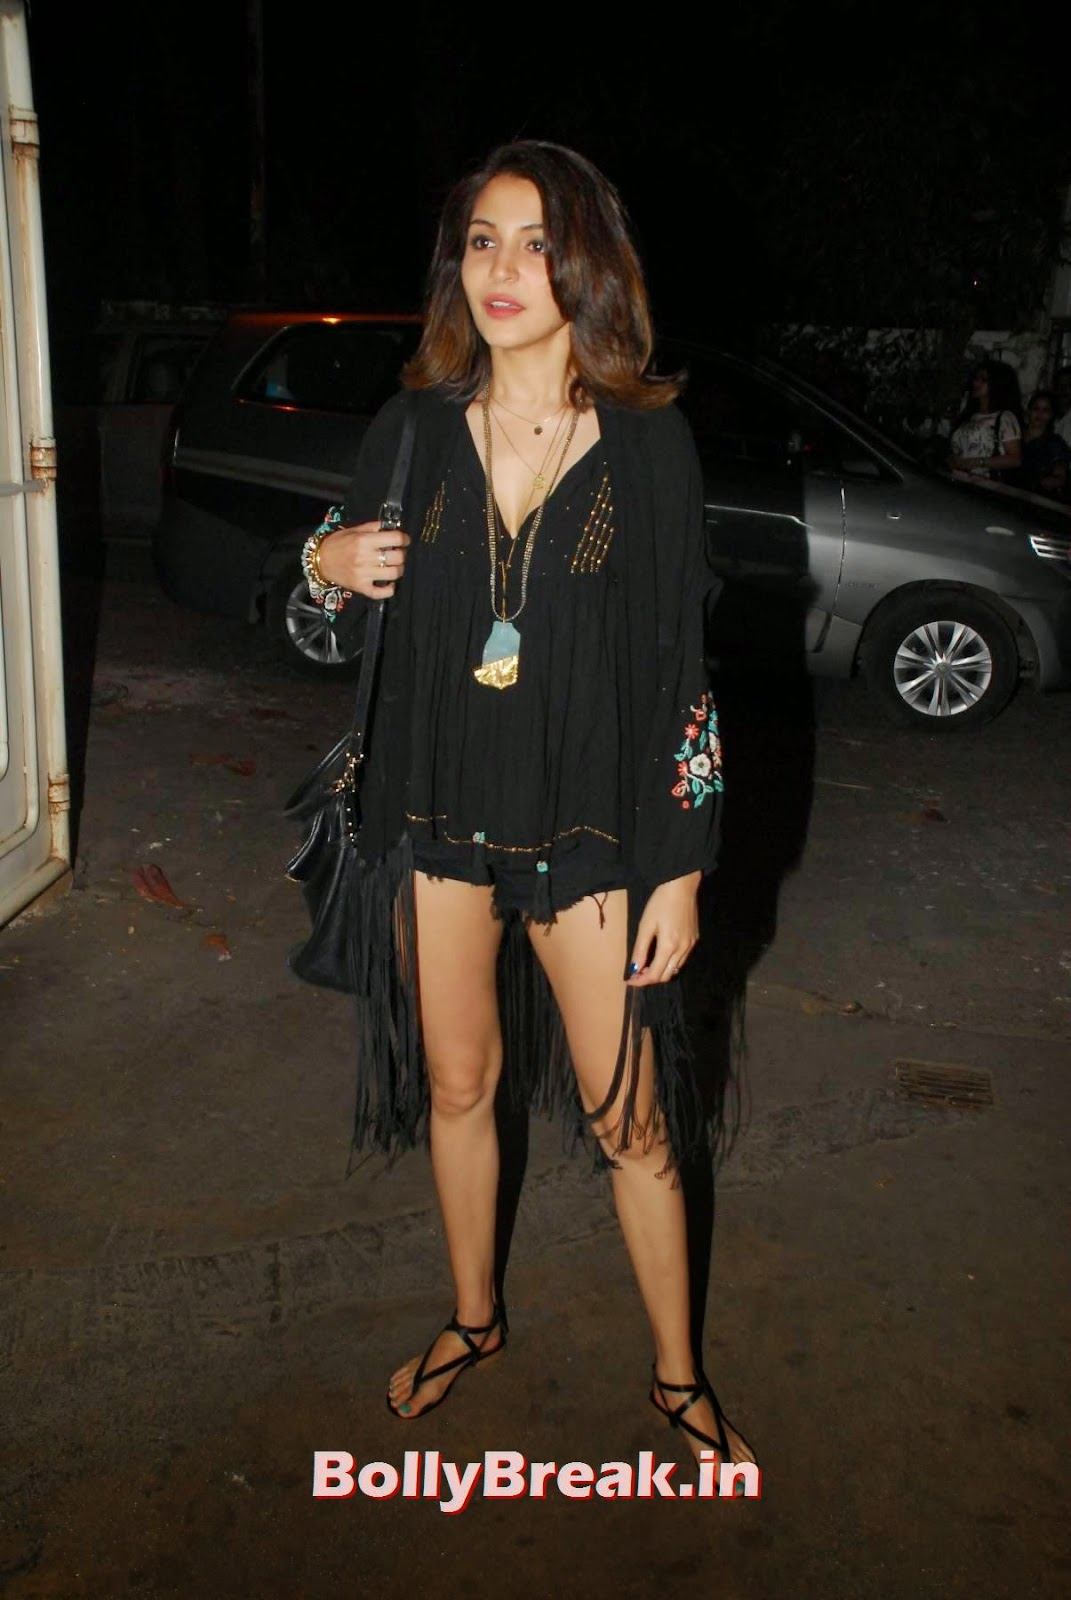 , Anushka Sharma Hot HD Photos in Black Dress & shorts